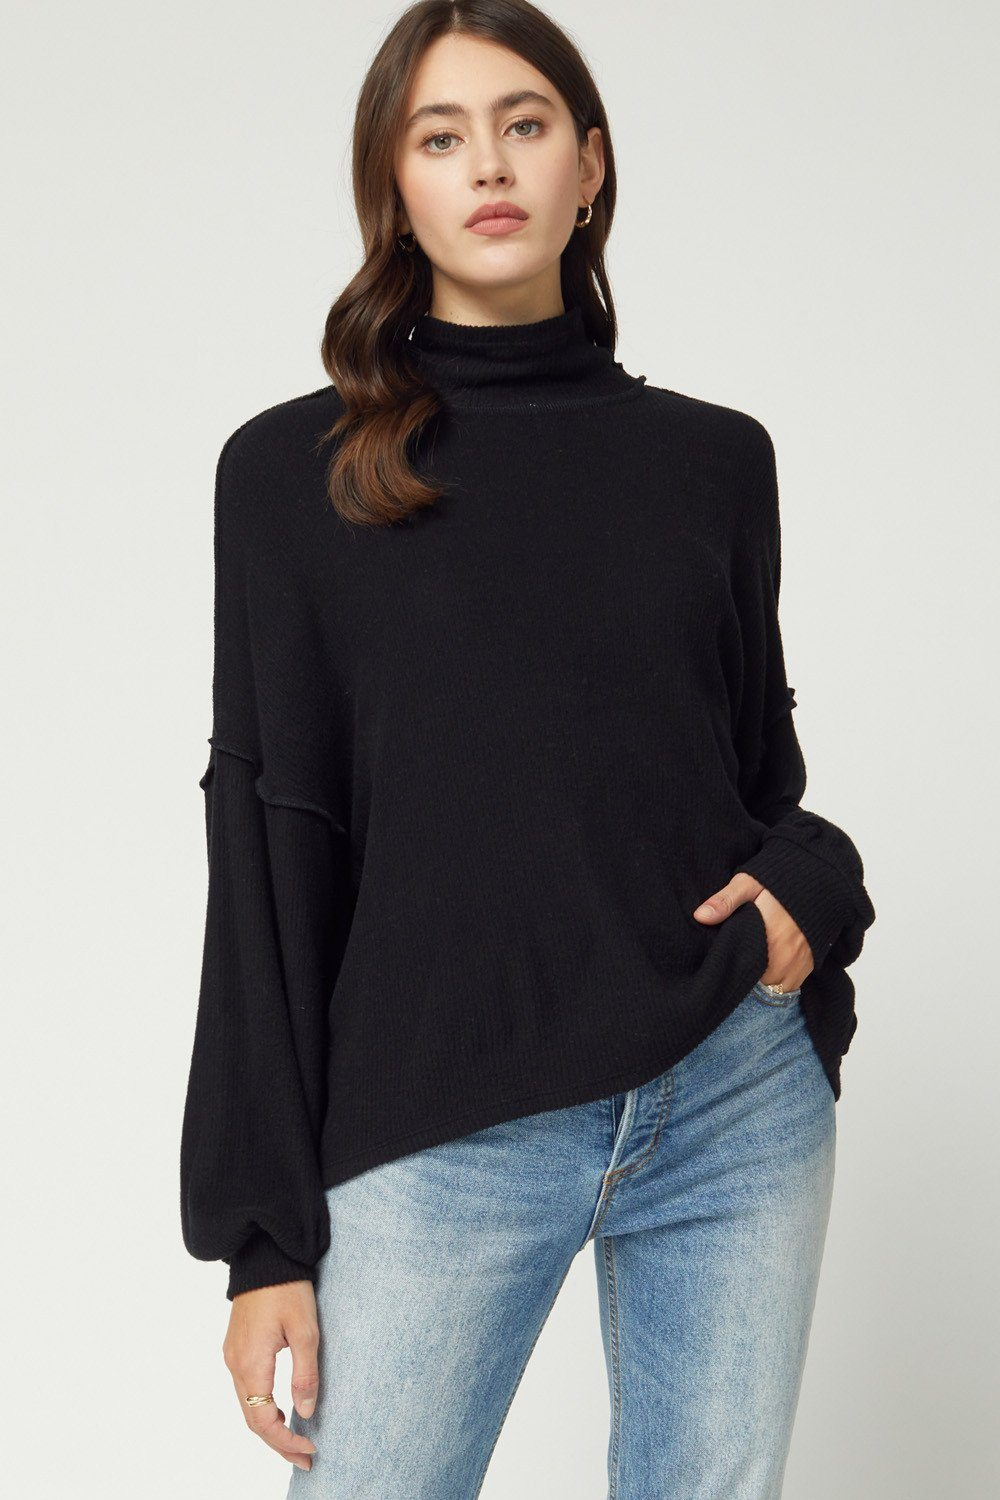 Still Dreaming Ribbed Black Sweater - Caroline Hill